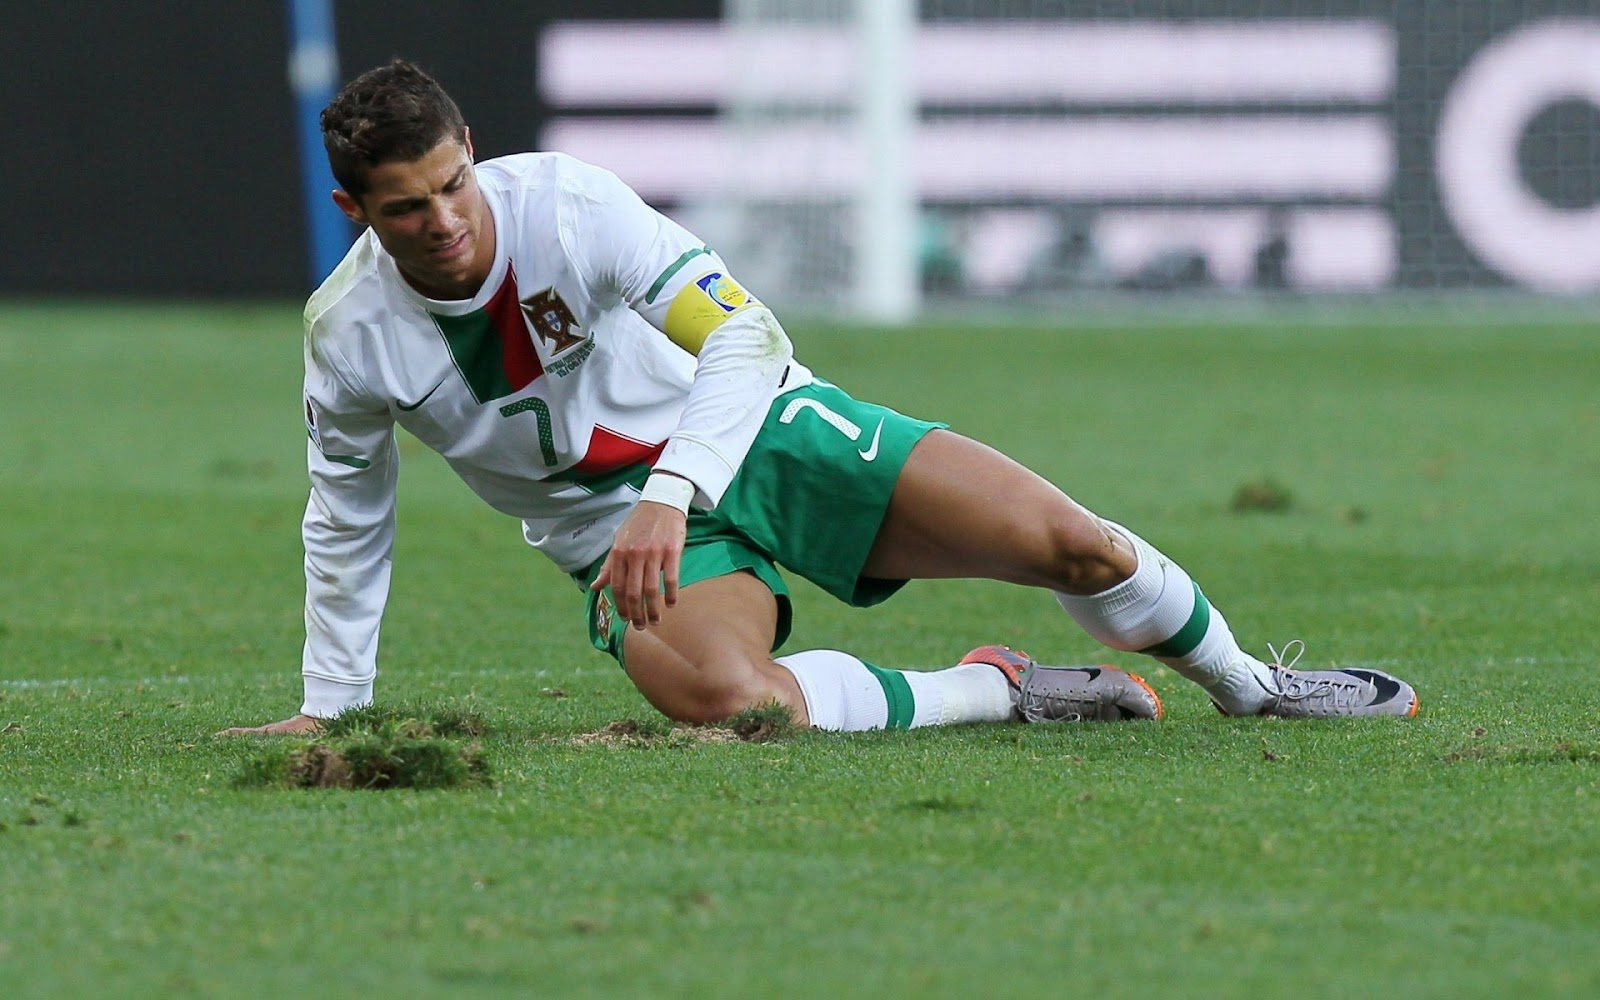 http://1.bp.blogspot.com/-f86ET4UwDIQ/TzNEePh-AvI/AAAAAAAAAwM/9O3fv7AJvkI/s1600/Ronaldo+playing+for+portugal+team.jpg